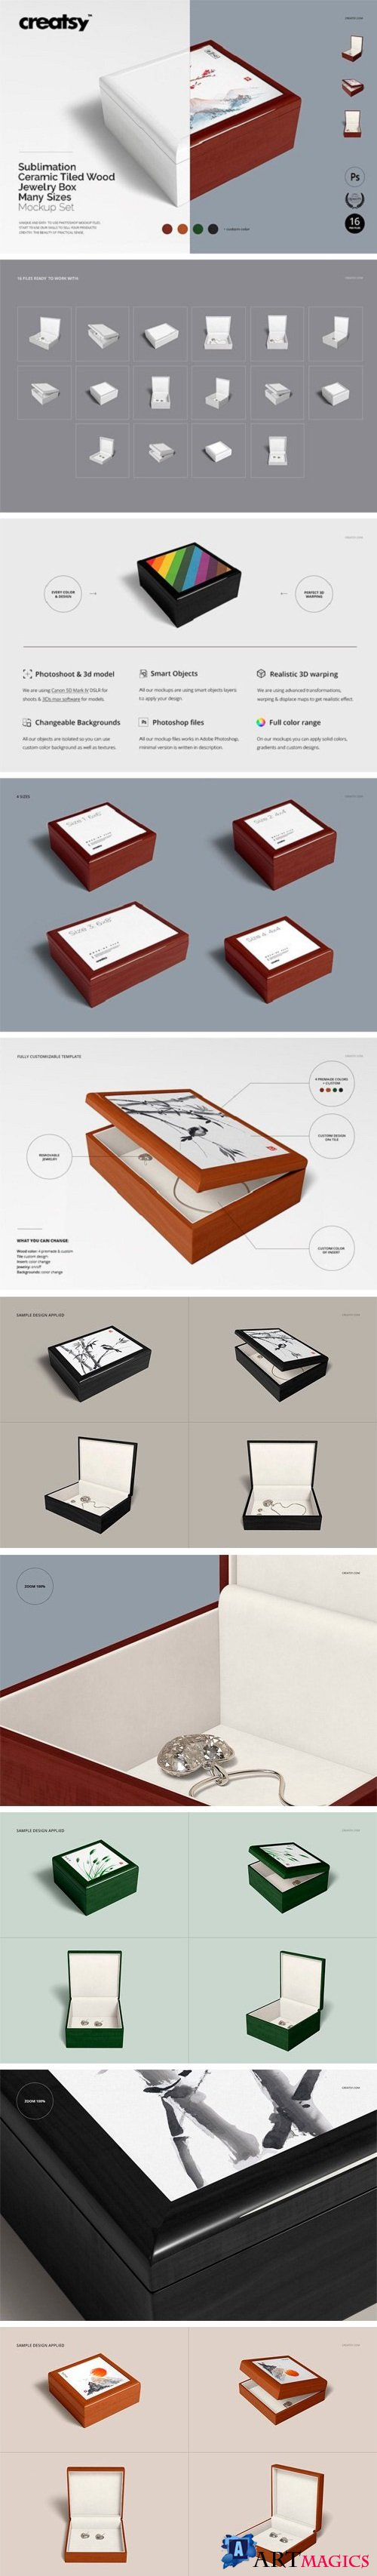 Tiled Wood Jewelry Box Mockup Set - 2249144